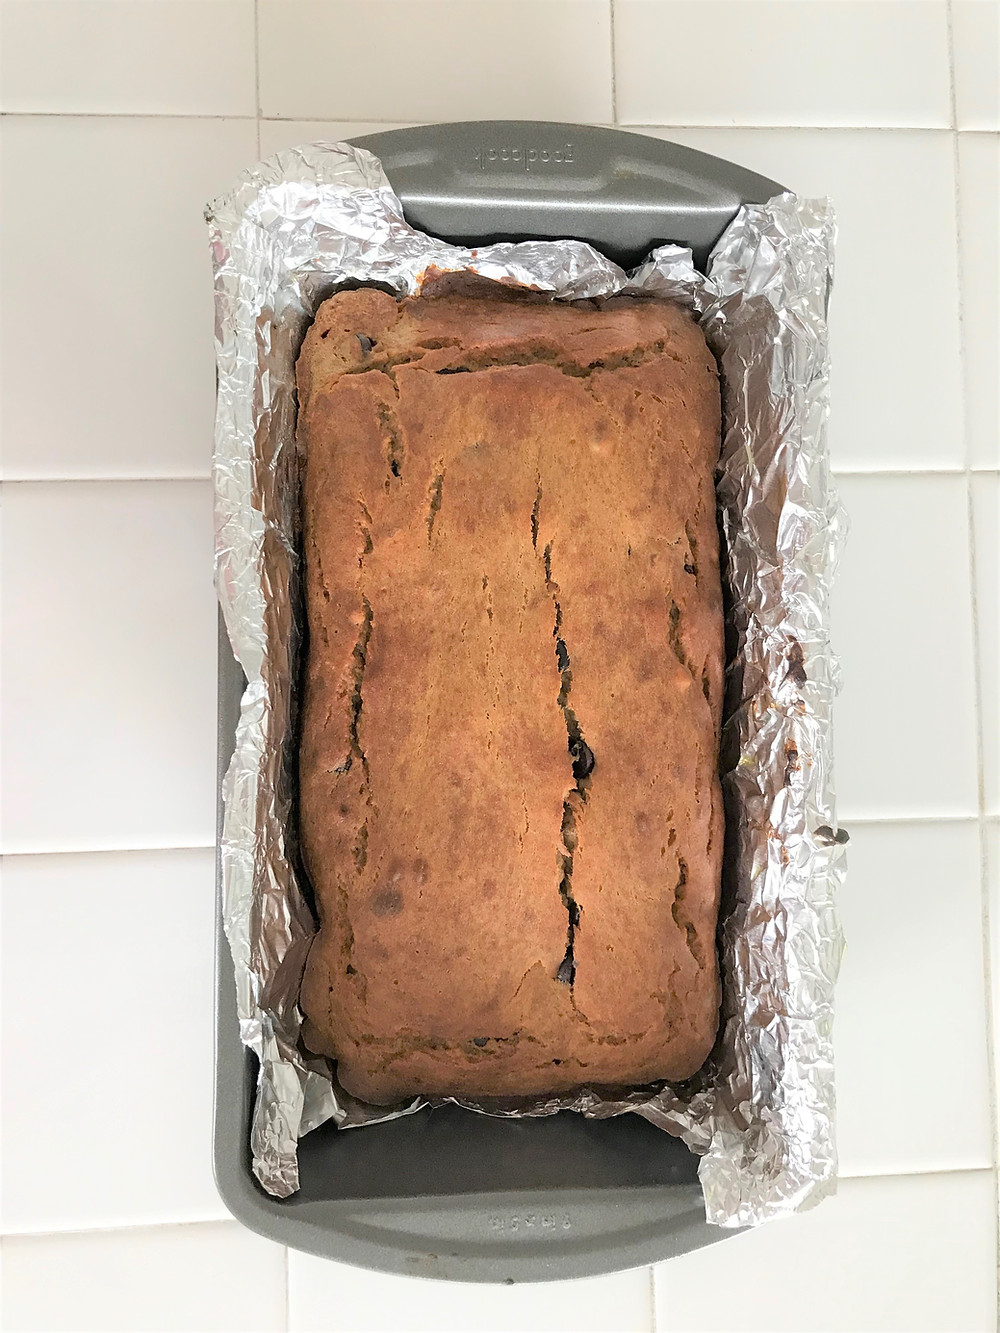 Foil-lined loaf pan with banana bread